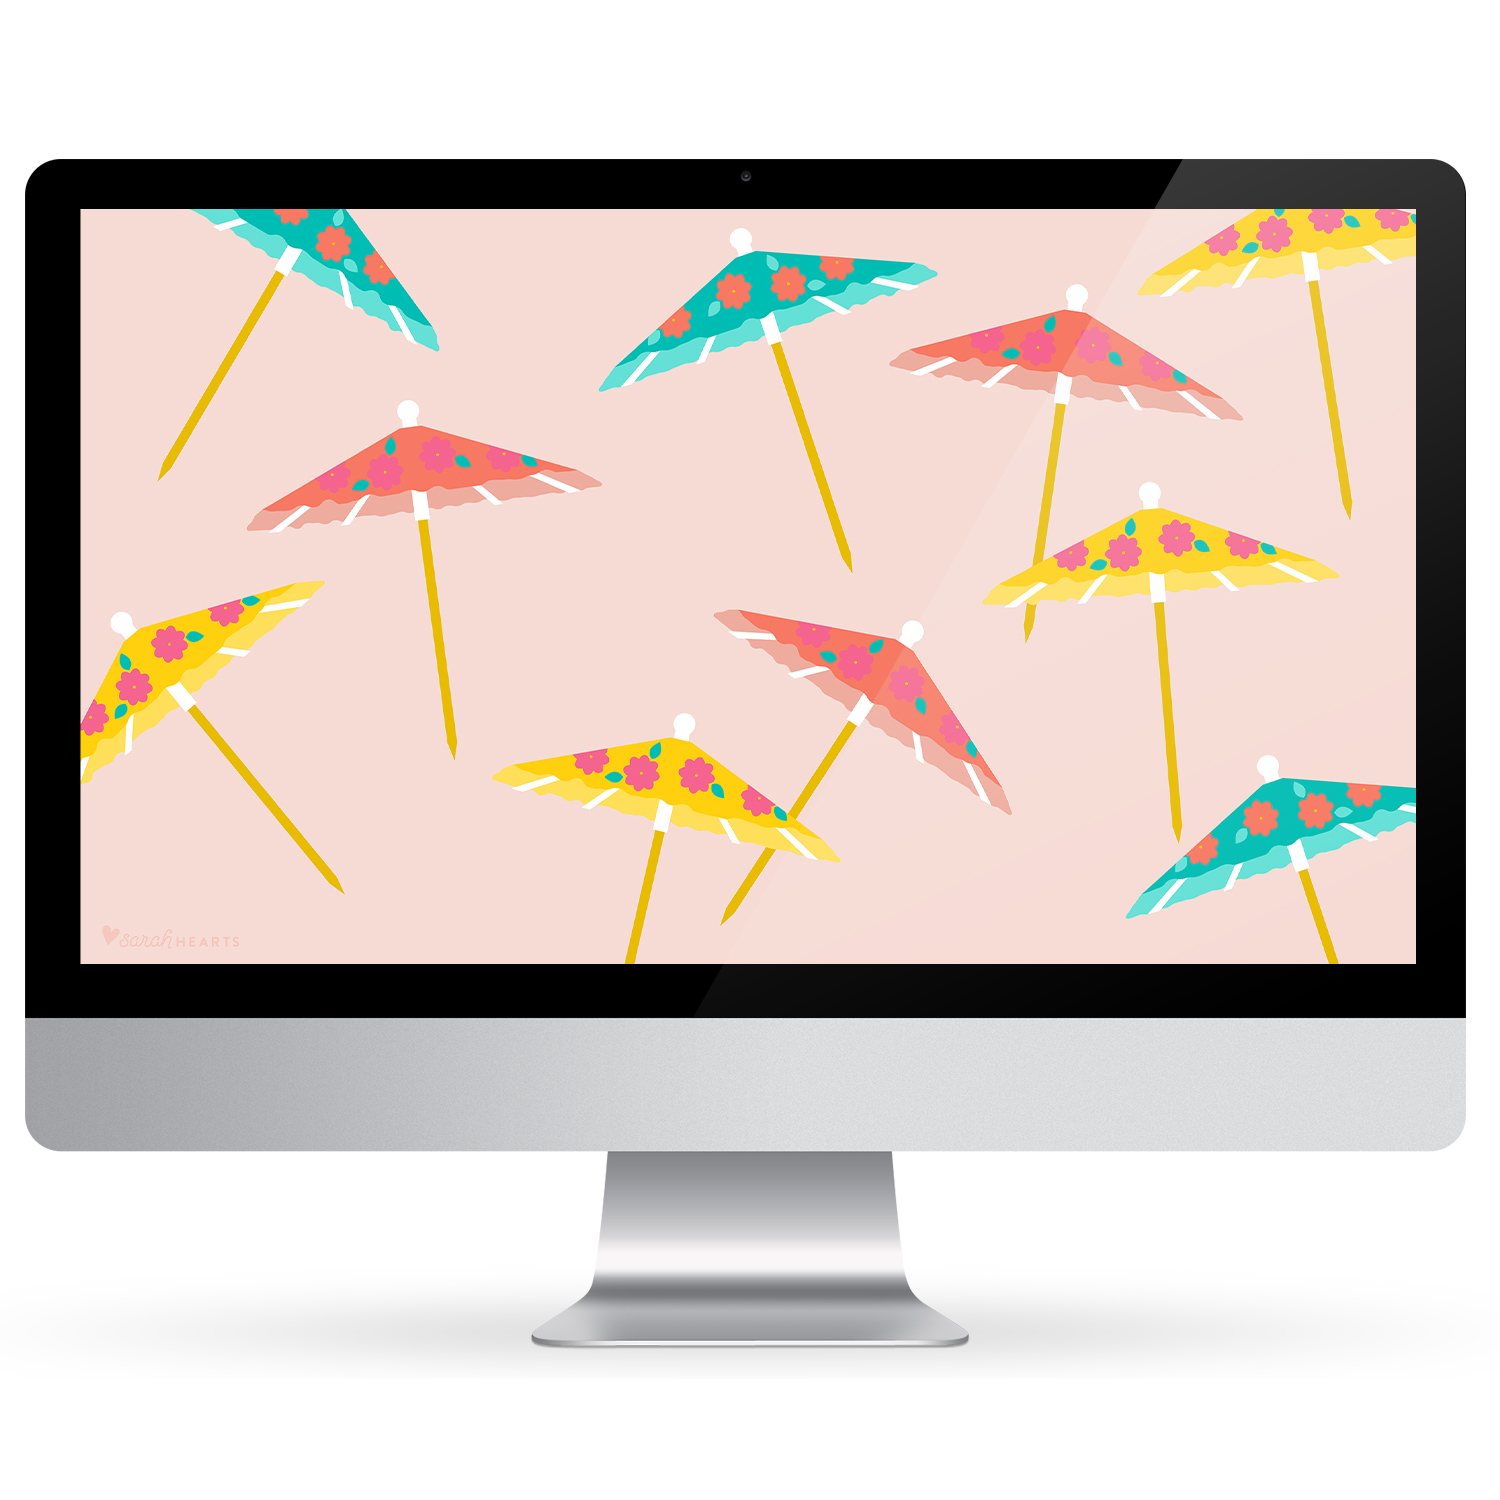 Savor summer by using this free drink umbrella wallpaper on all your devices!